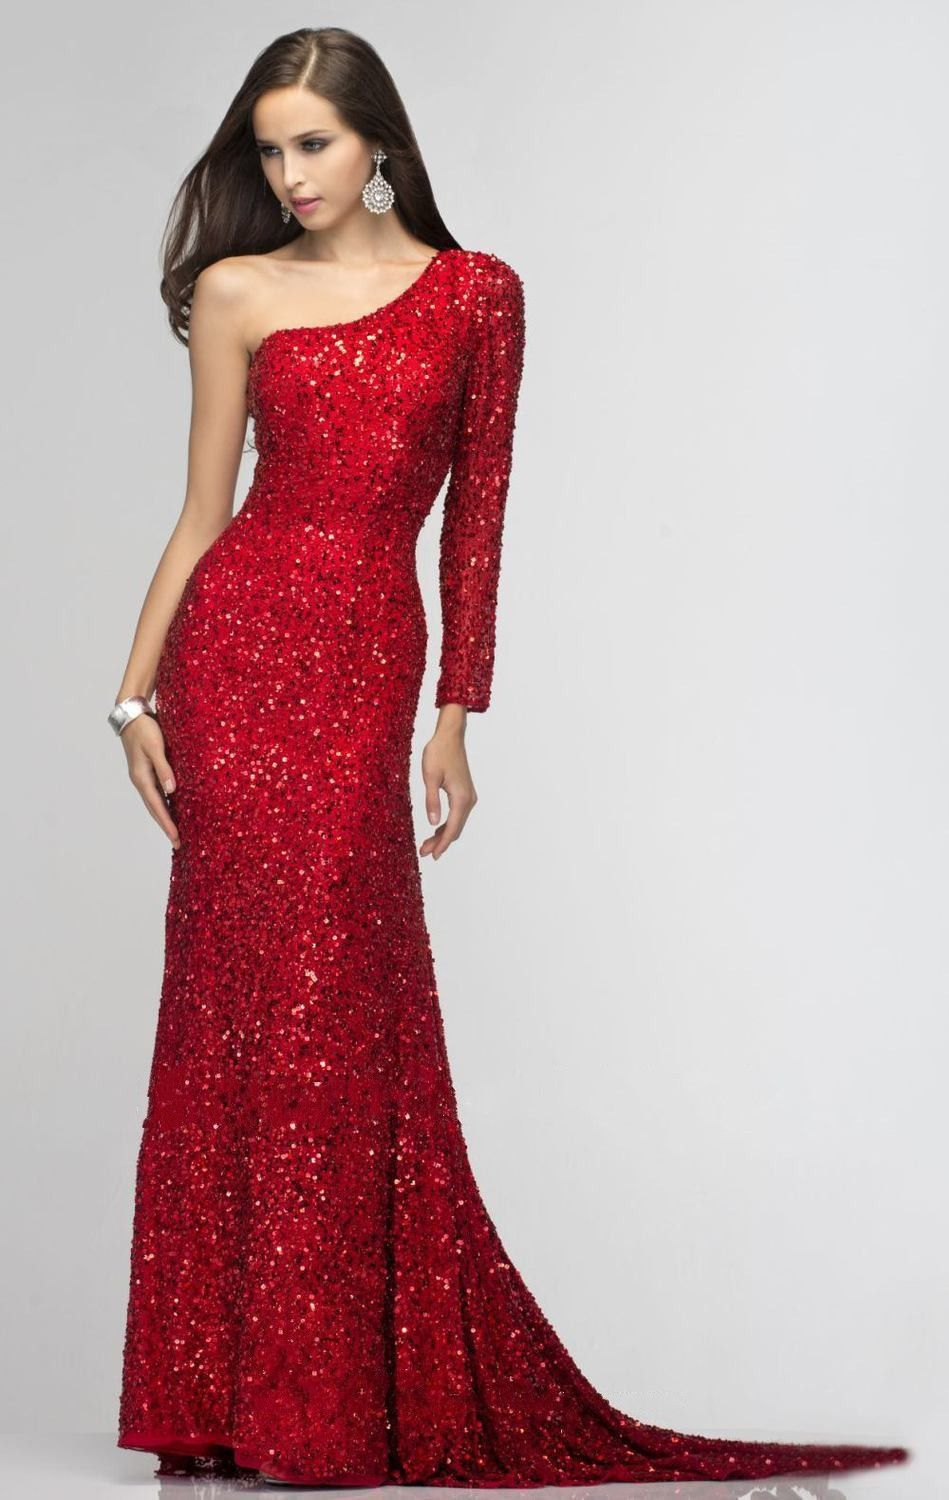 Gold silver red sequins beaded one shoulder long sleeve